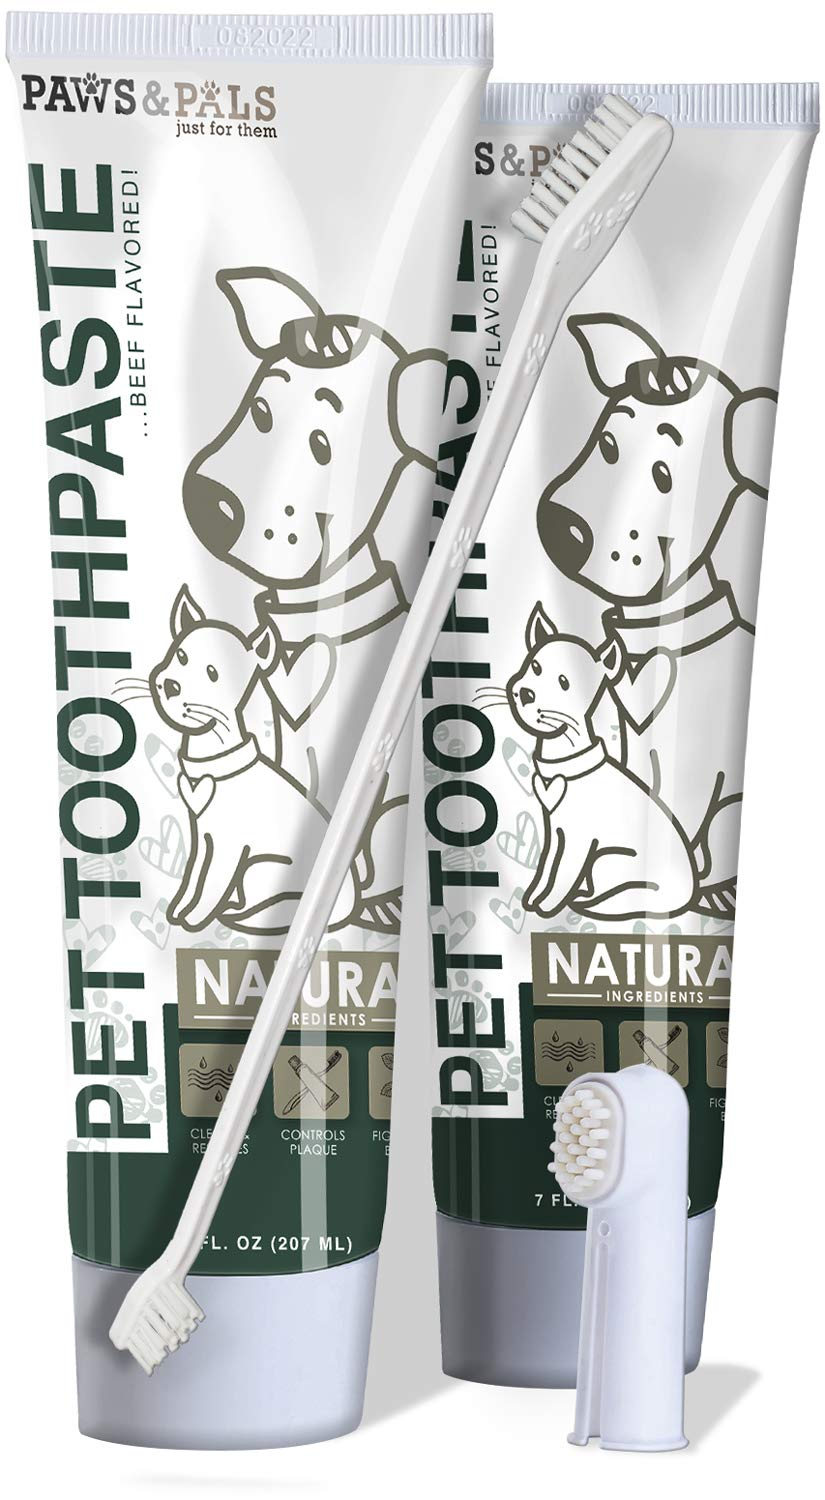 Paws & Pals Pet Dental Care Kit